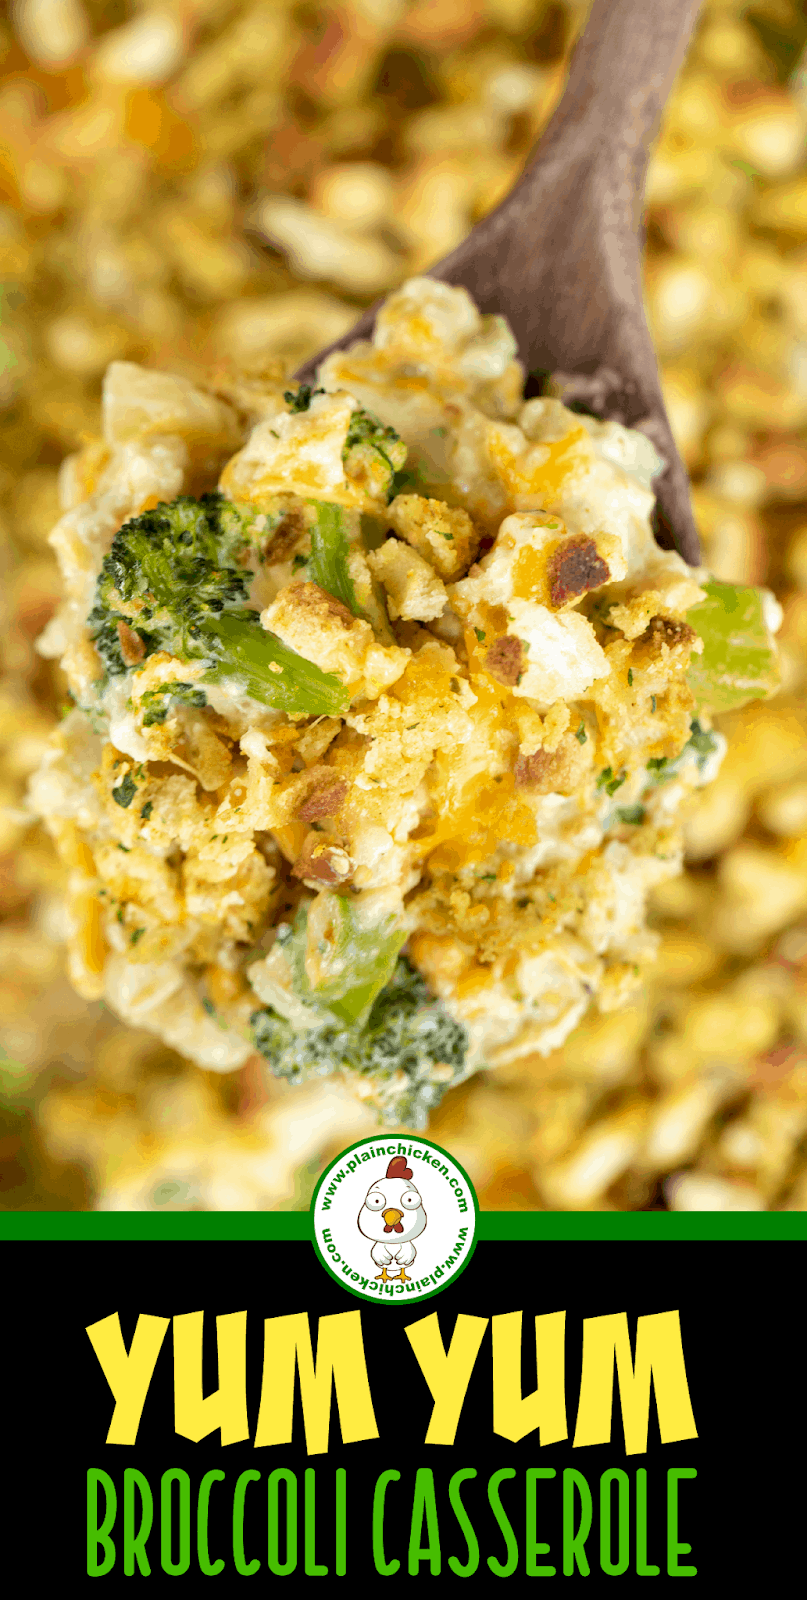 spoonful of broccoli casserole